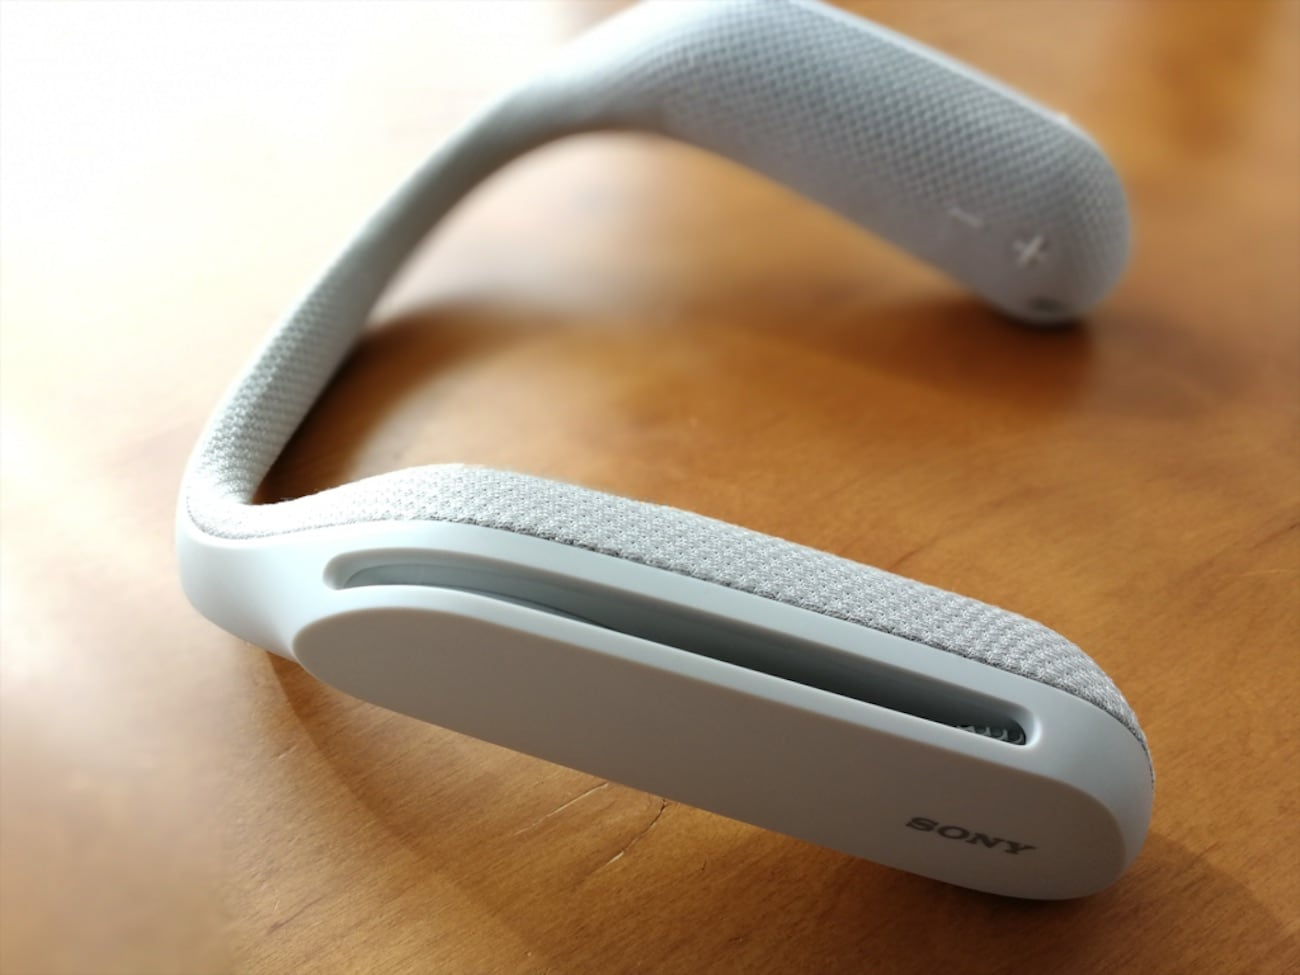 Sony SRS-WS1 Wearable Neck Speaker » Gadget Flow